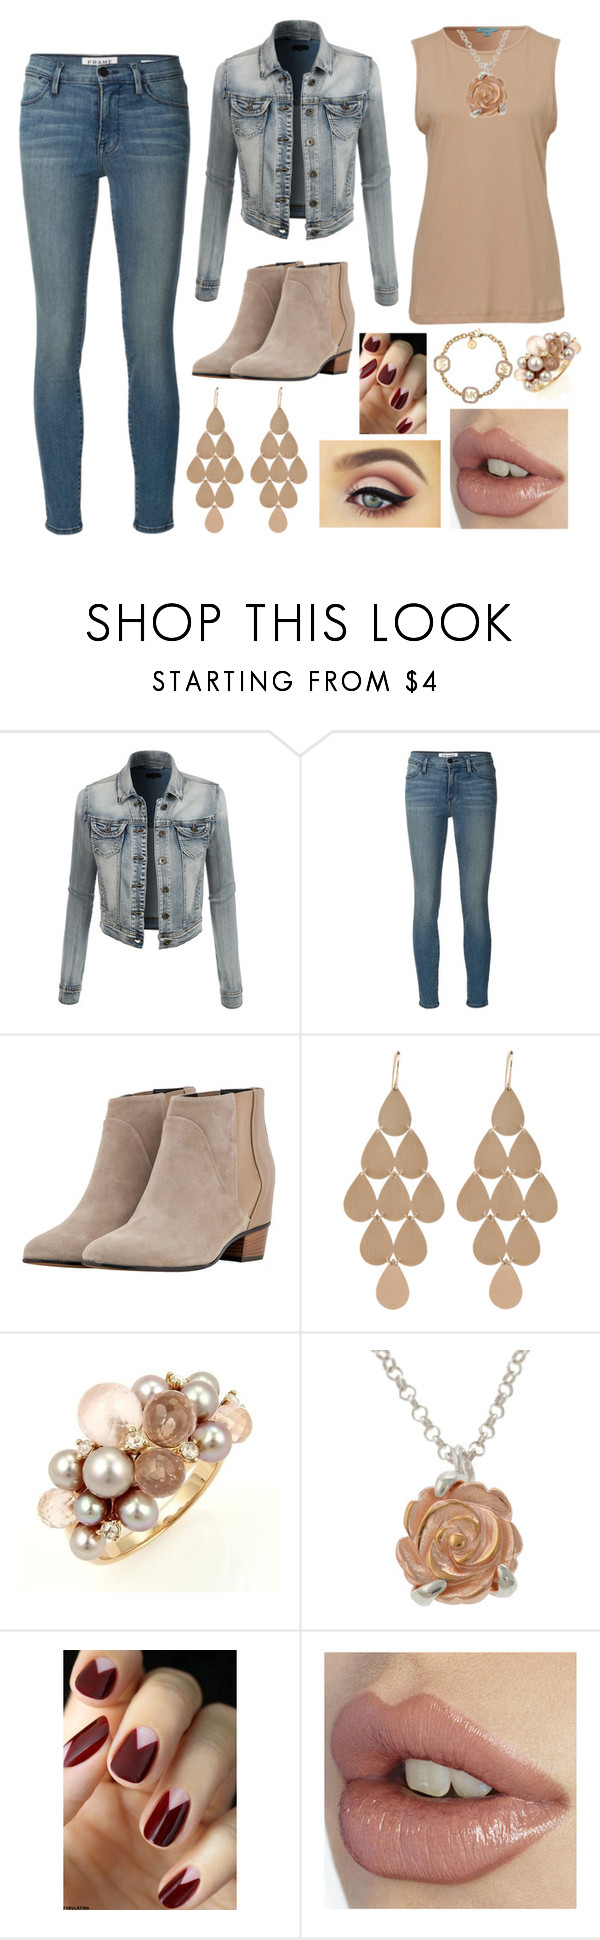 """Untitled #1598"" by sarah-michelle-steed ❤ liked on Polyvore featuring LE3NO…"